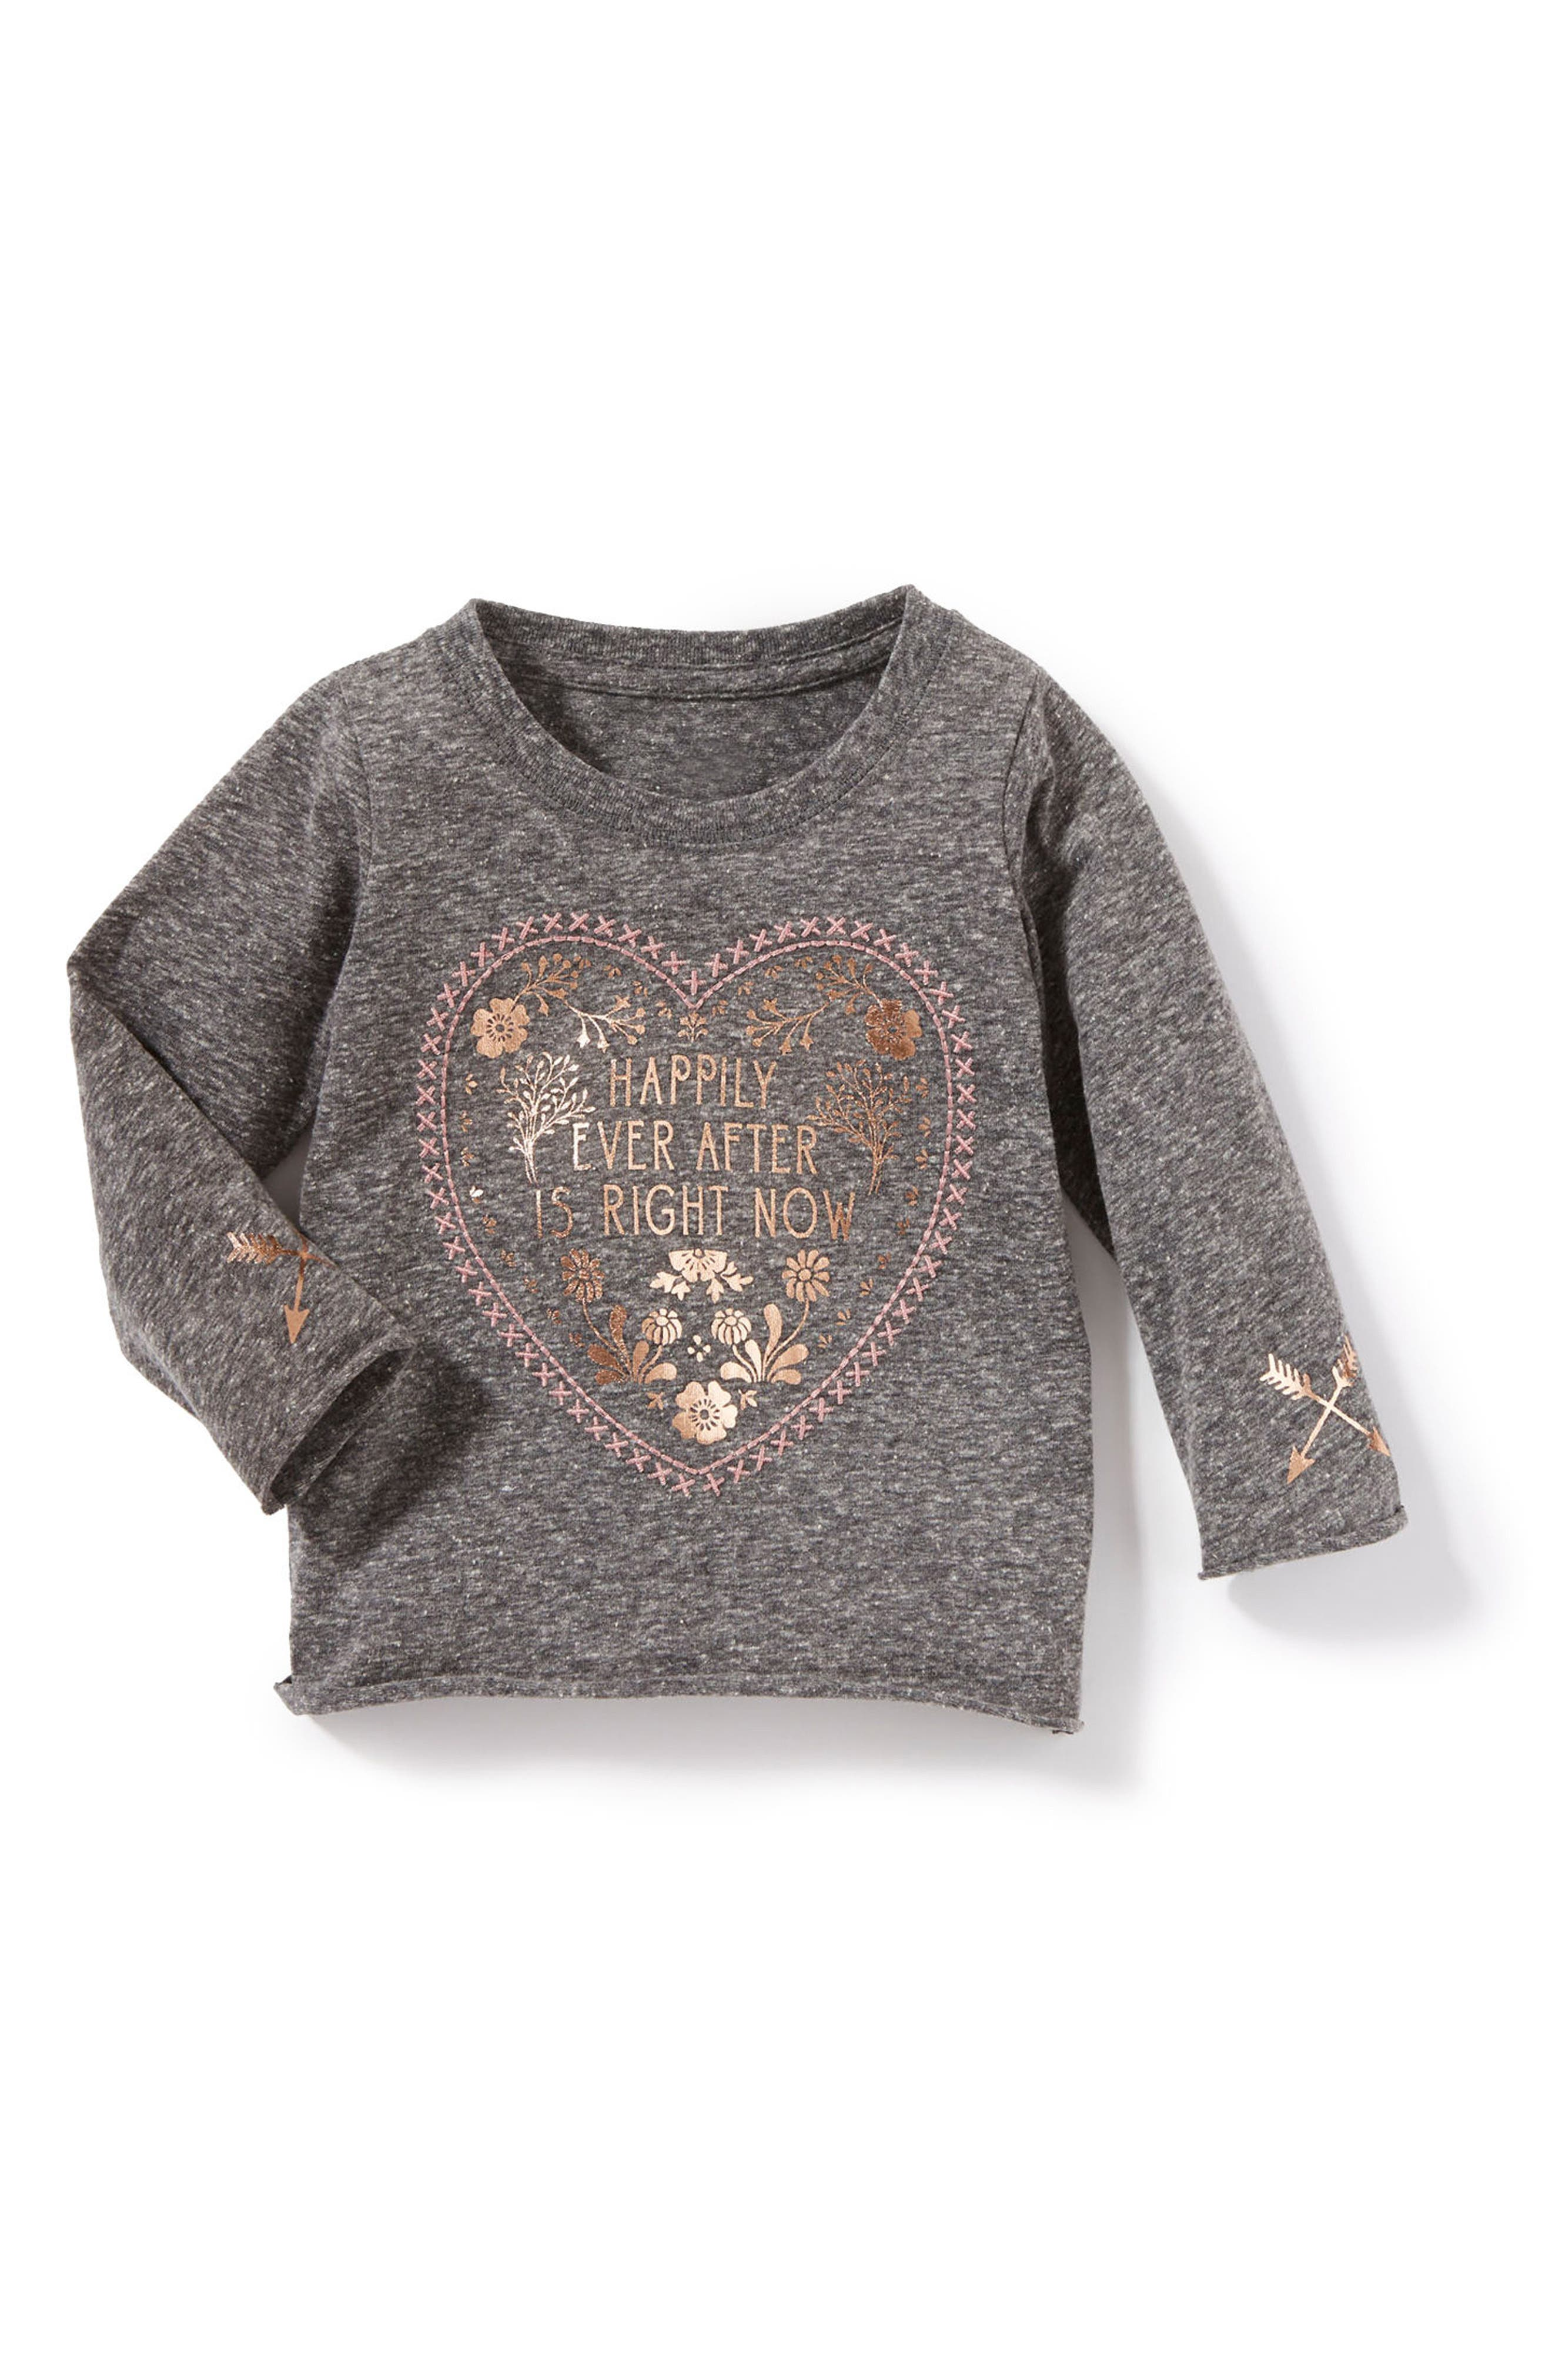 Alternate Image 1 Selected - Peek Happily Ever After Graphic Tee (Baby Girls)